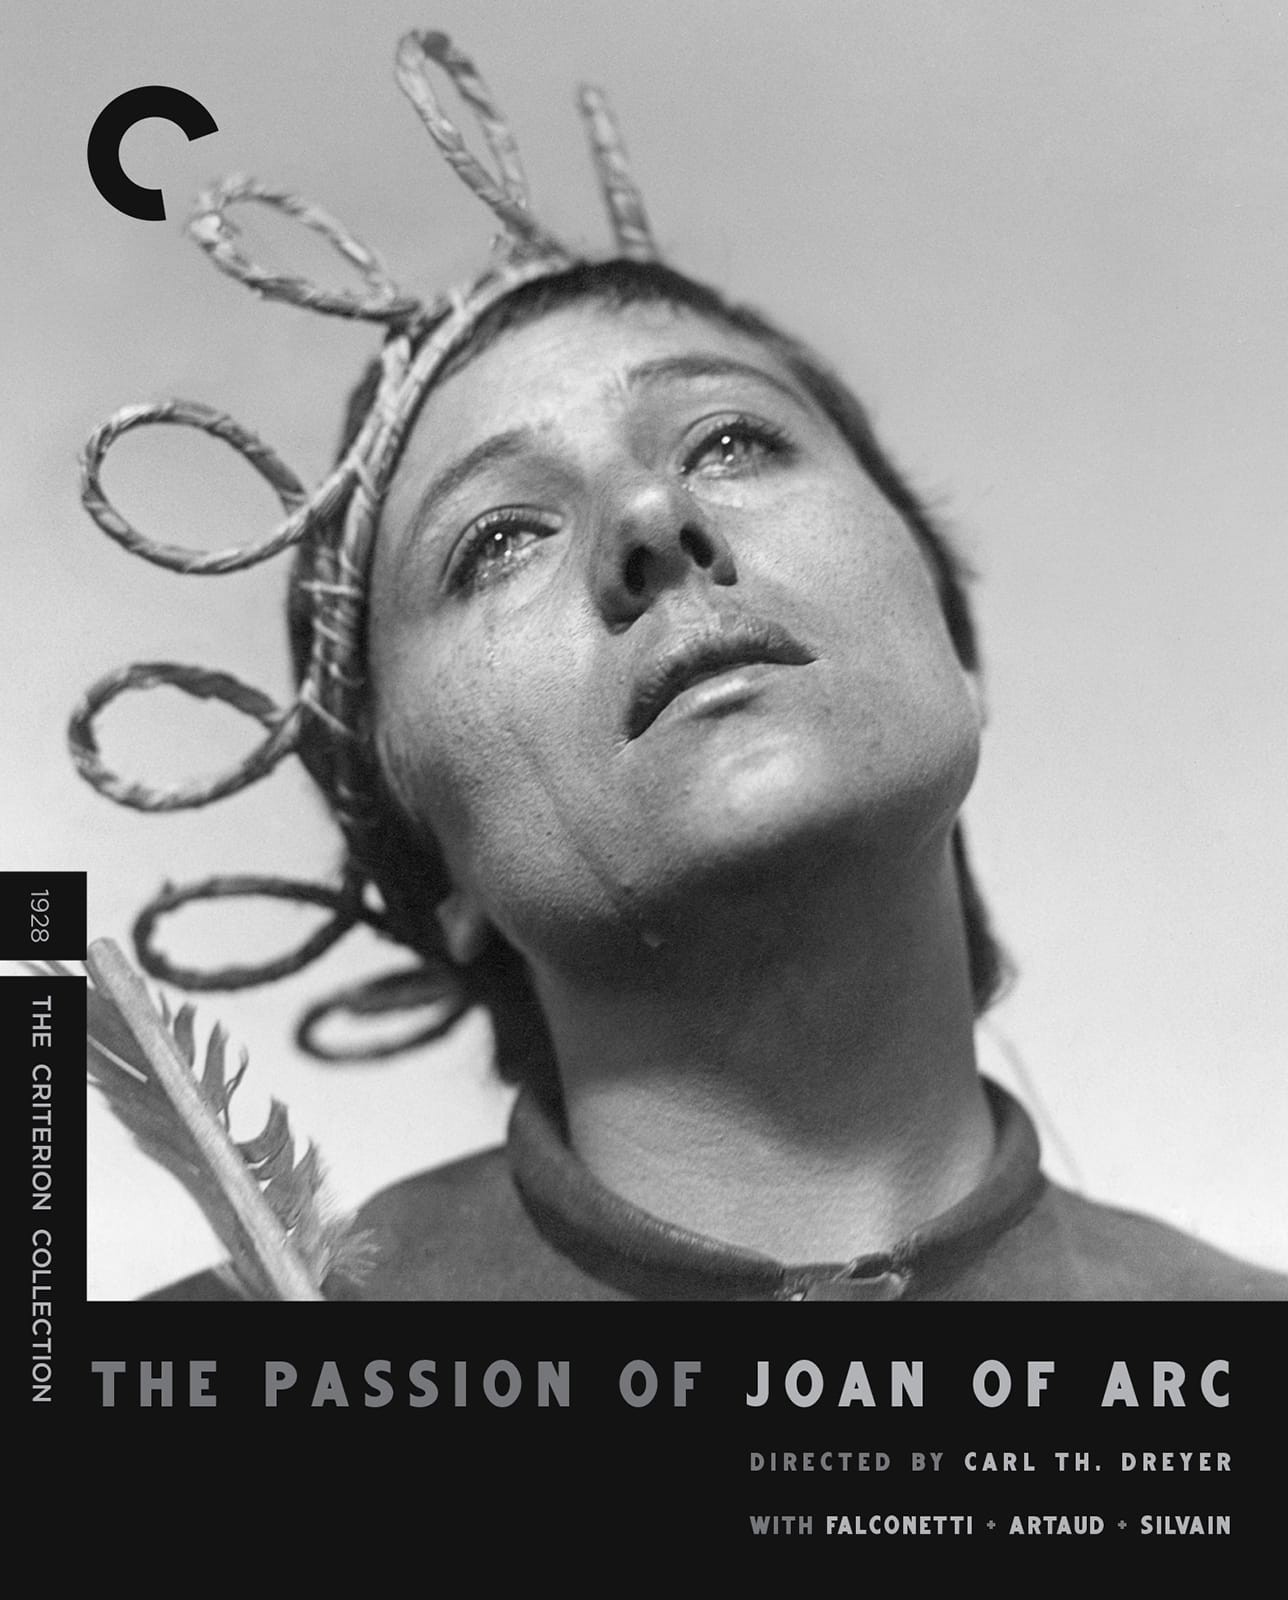 The Passion of Joan of Arc (The Criterion Collection)(1928) Blu-ray